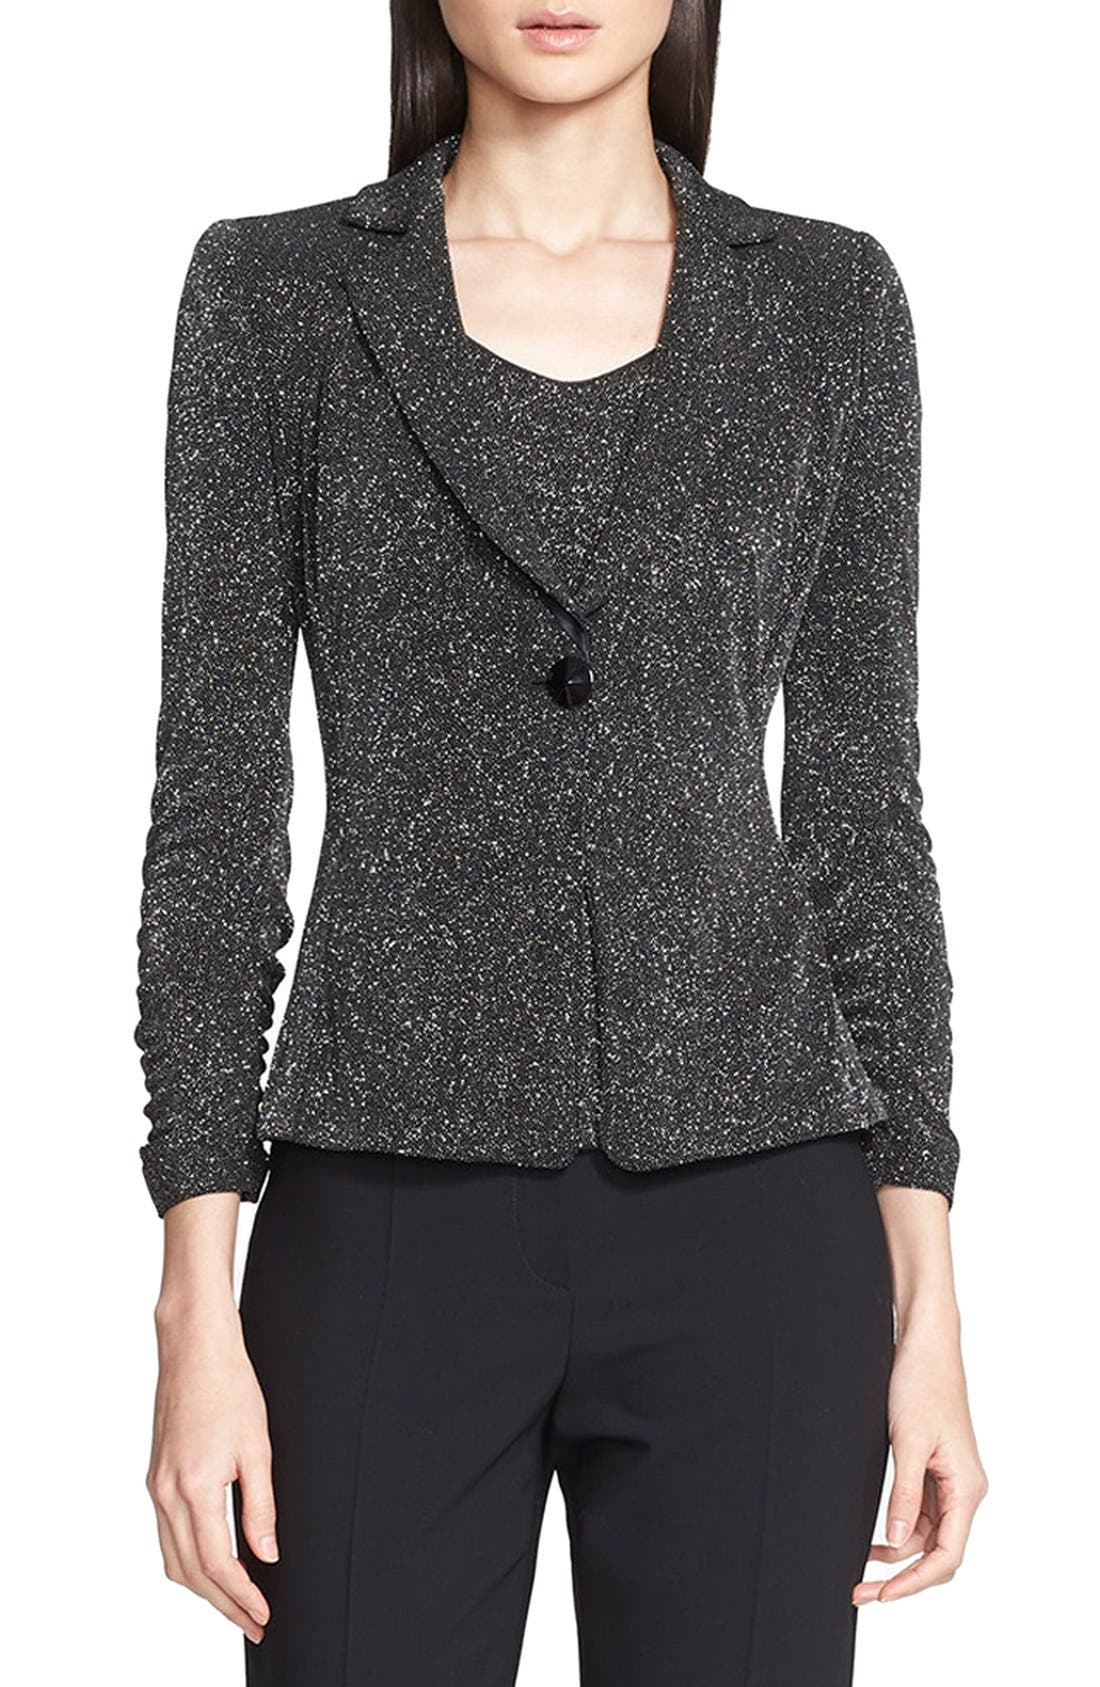 Alternate Image 1 Selected - Armani Collezioni Glitter Jersey Jacket